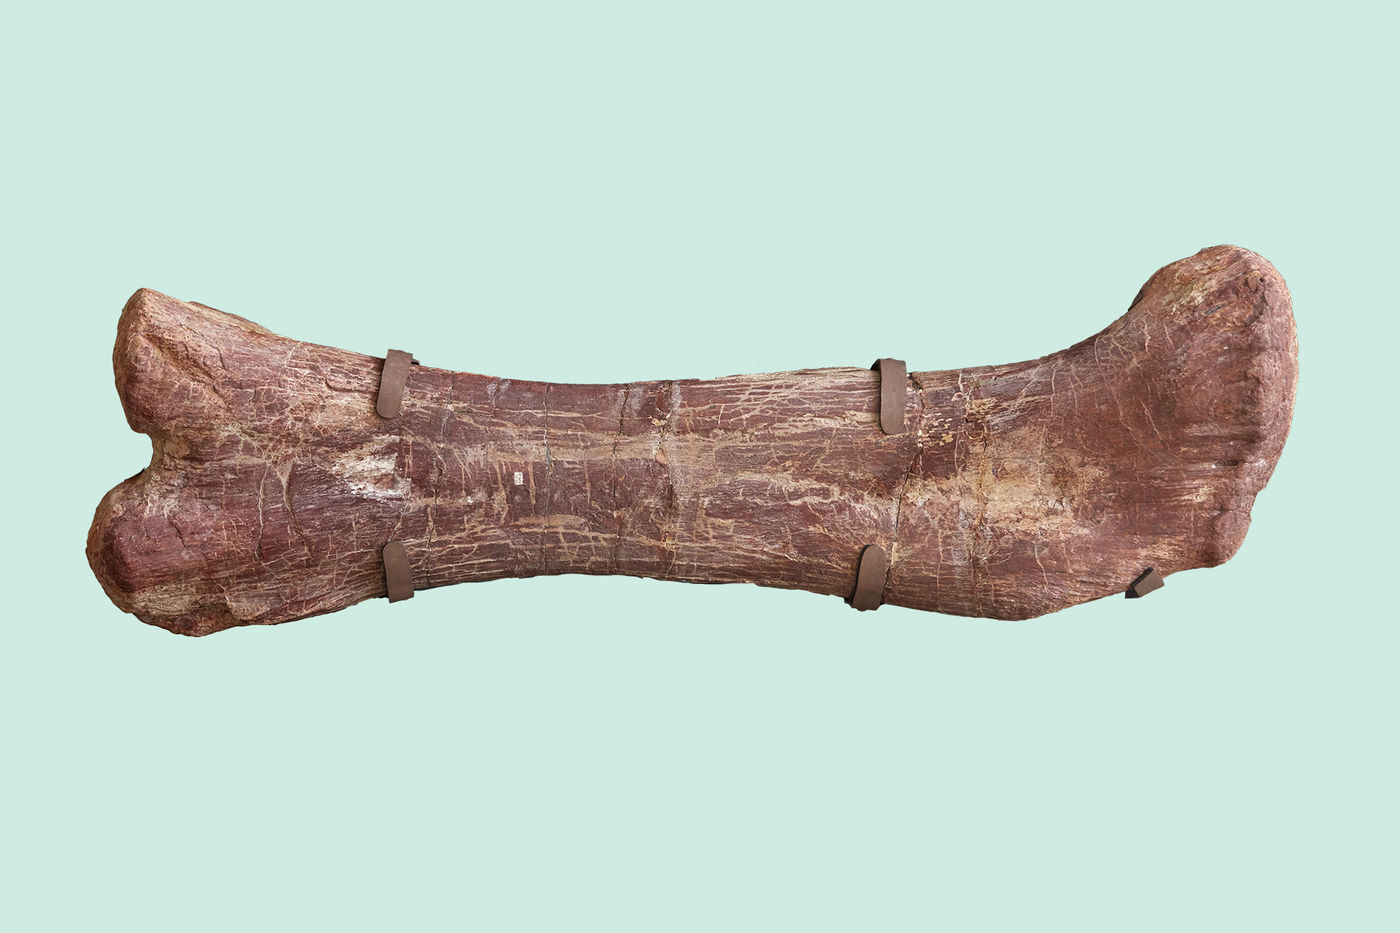 A large, reddish dinosaur bone, with two visible clasps securing it.